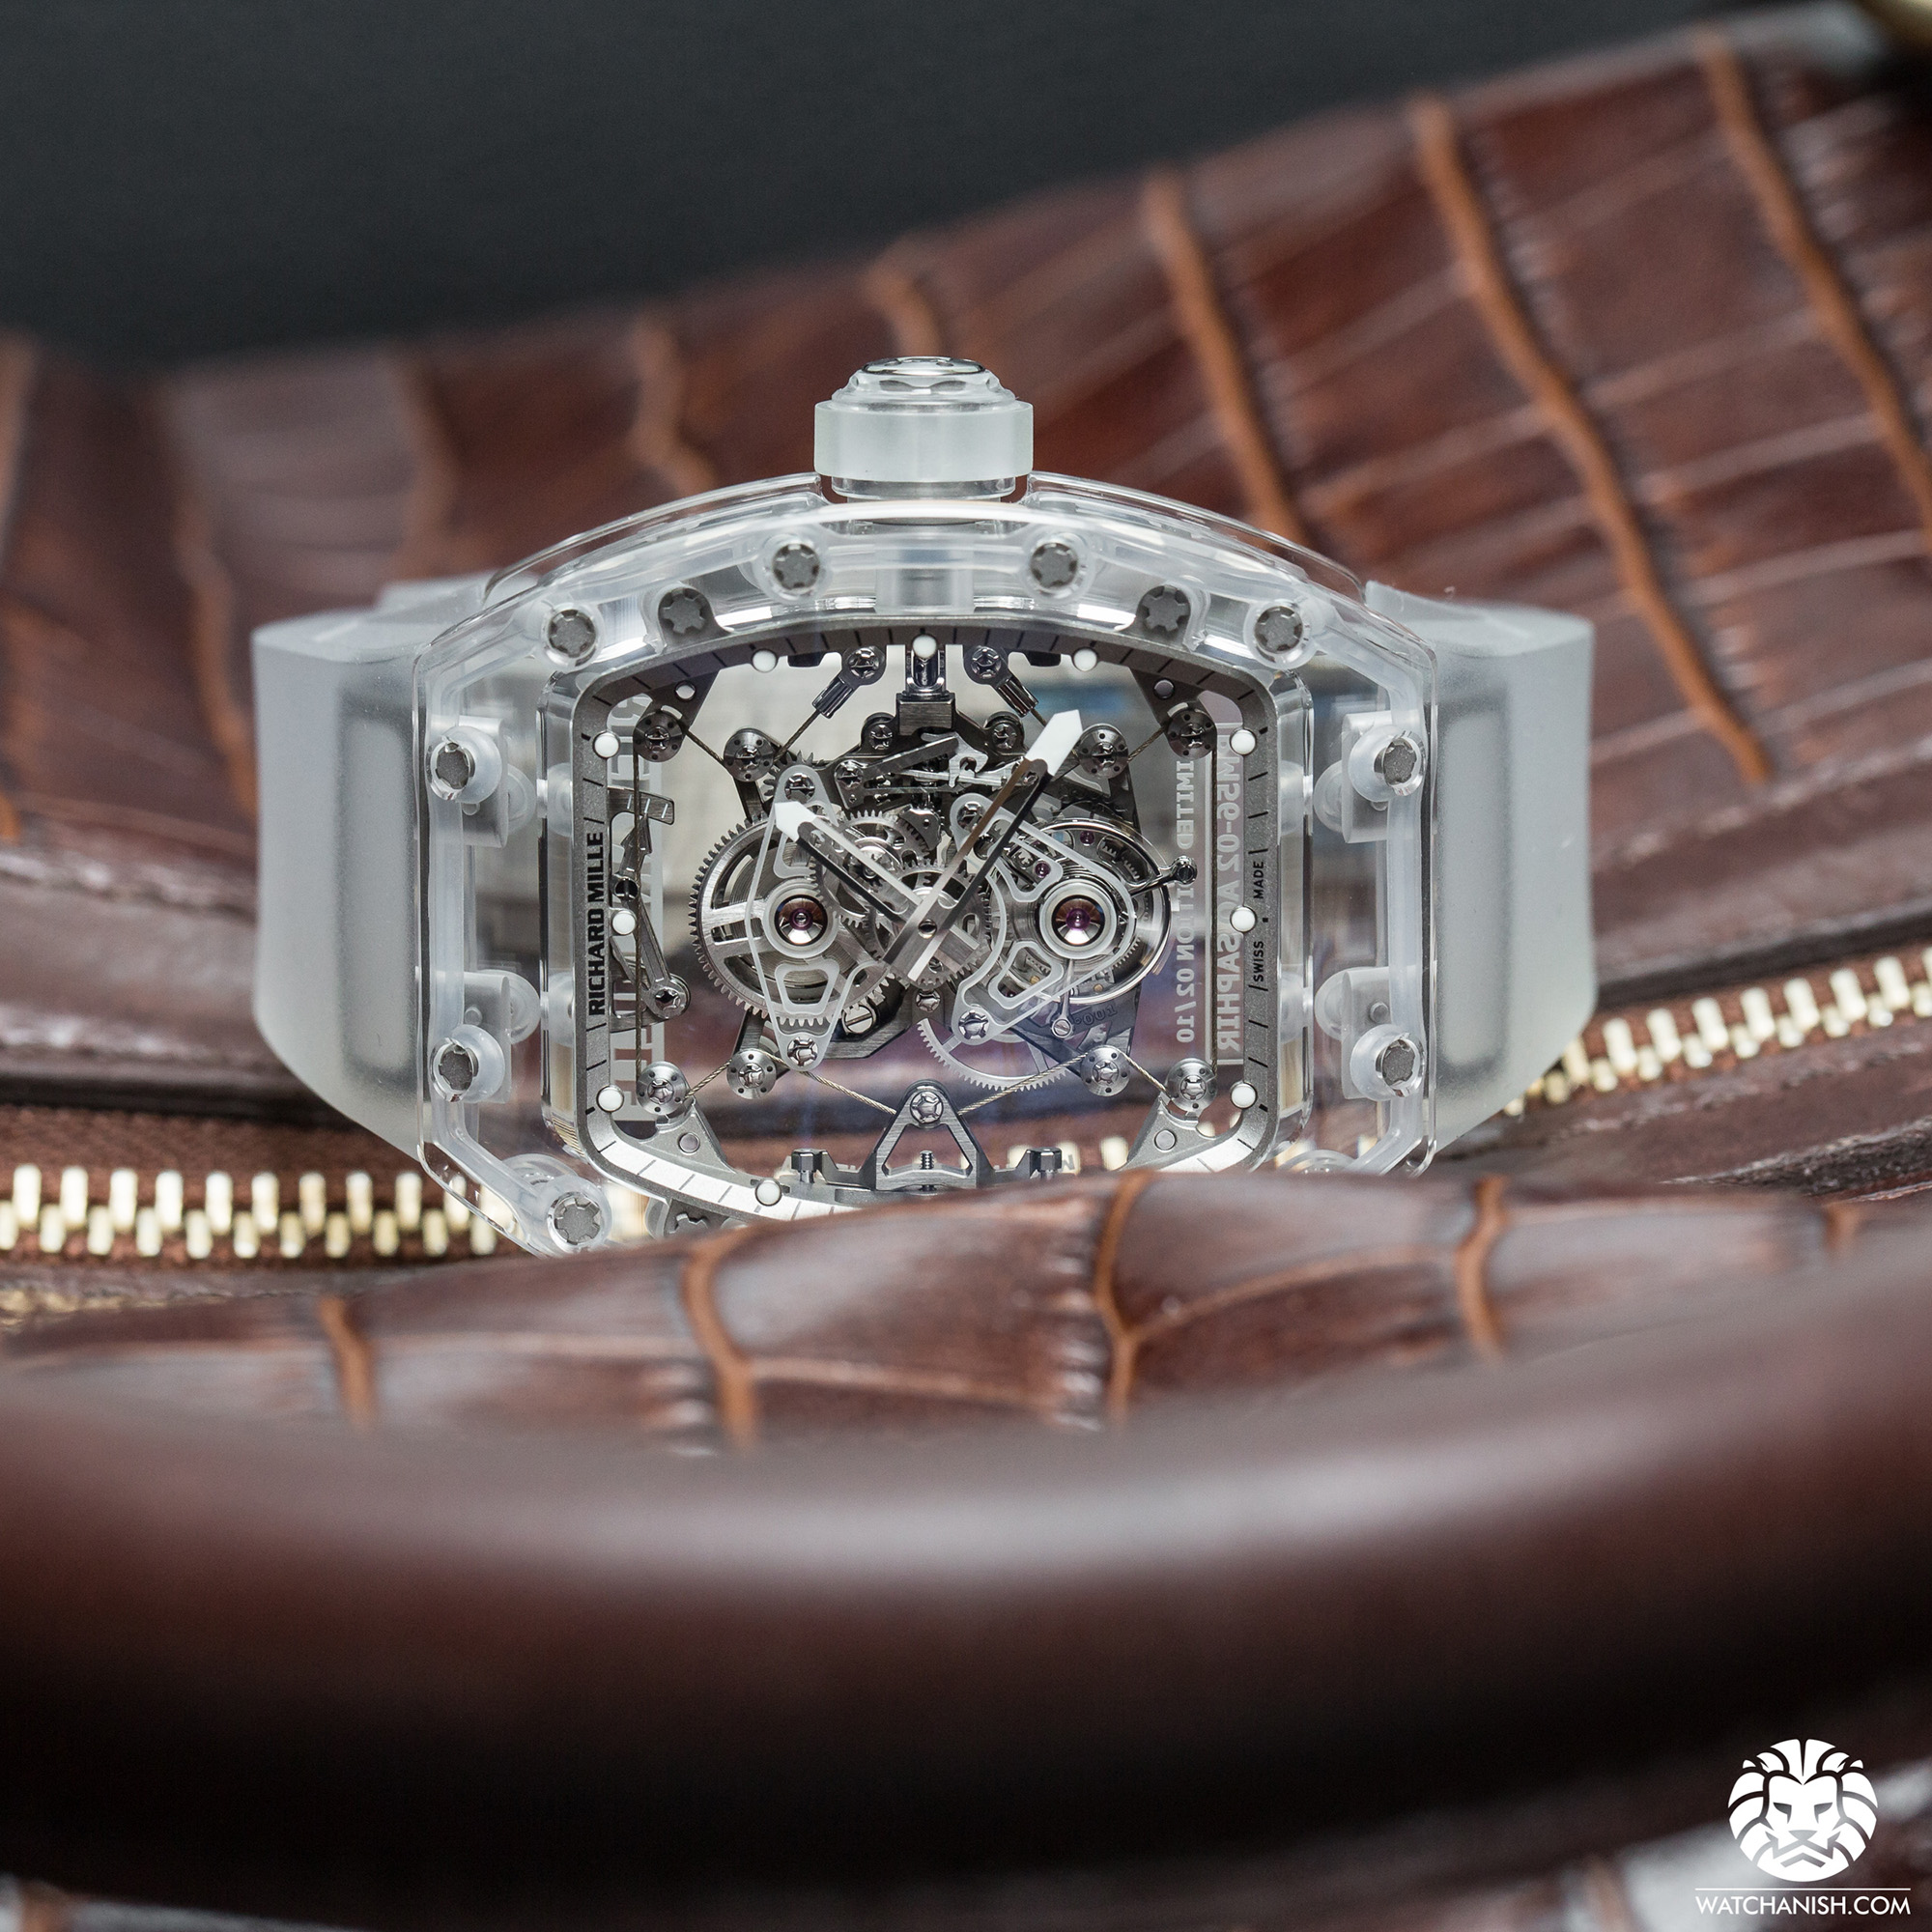 Watches & Wonders 2014 - Richard Mille RM056-02